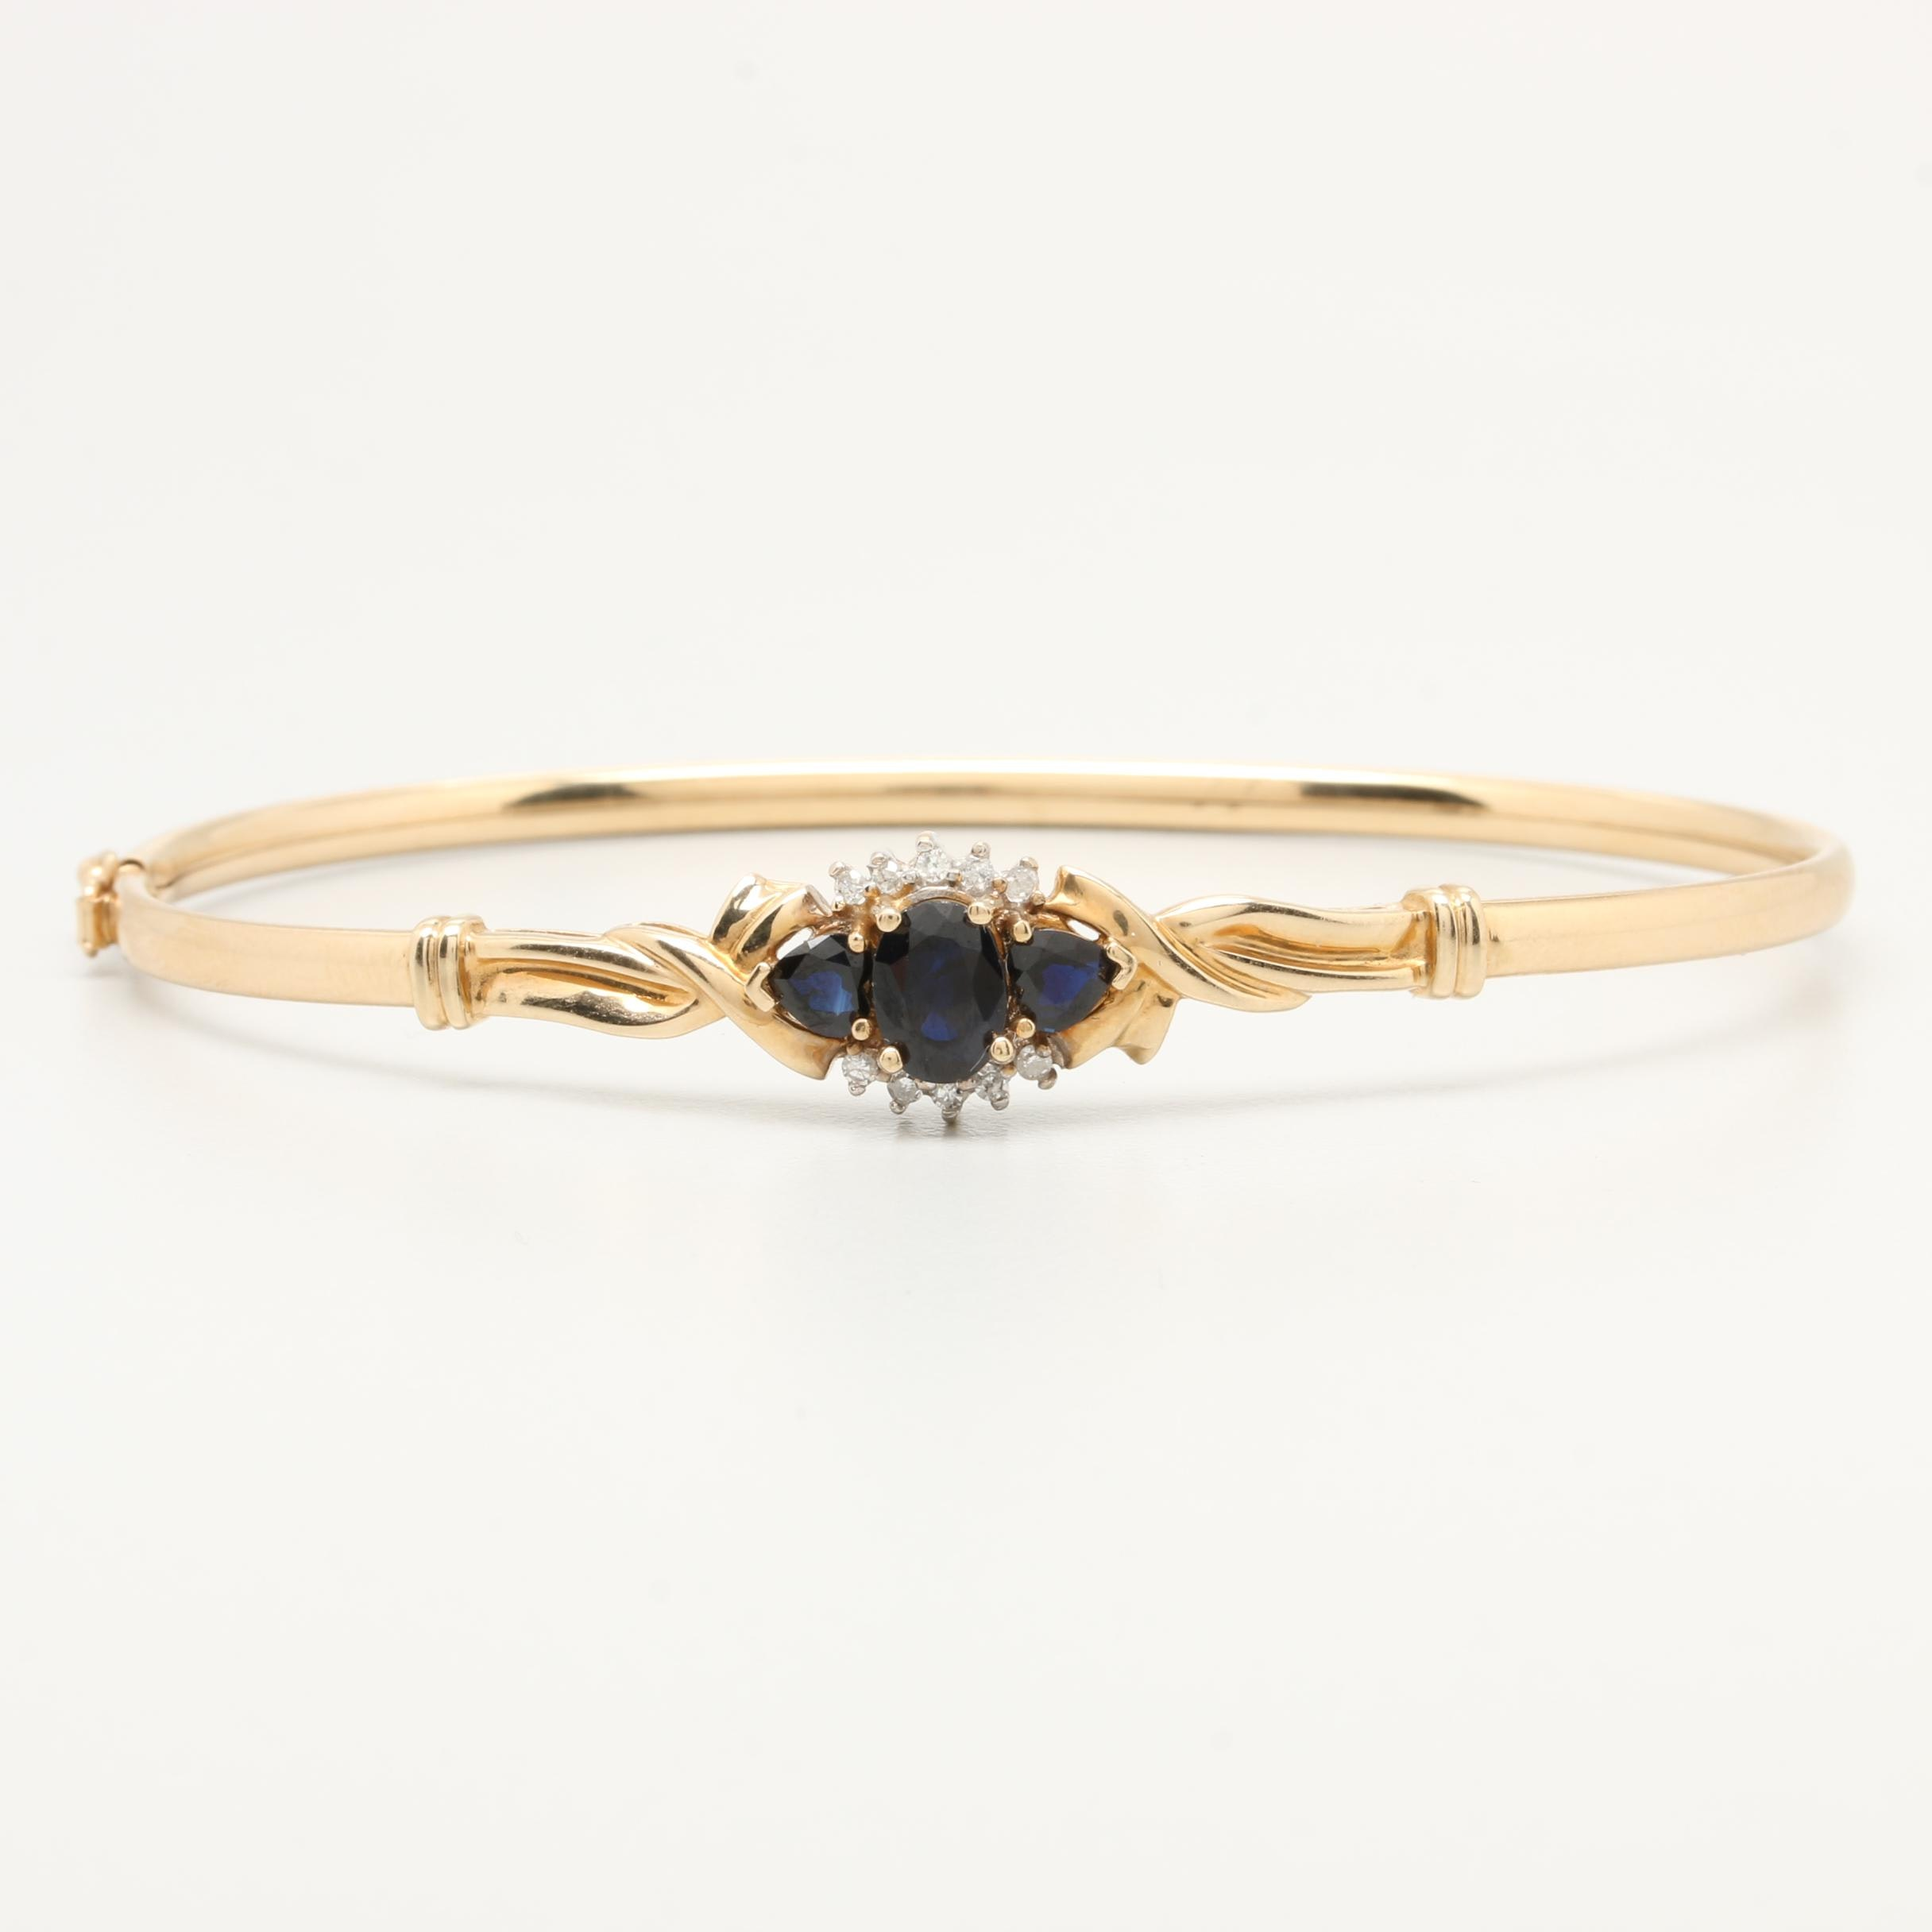 10K Yellow Gold Sapphire and Diamond Flexible Bangle